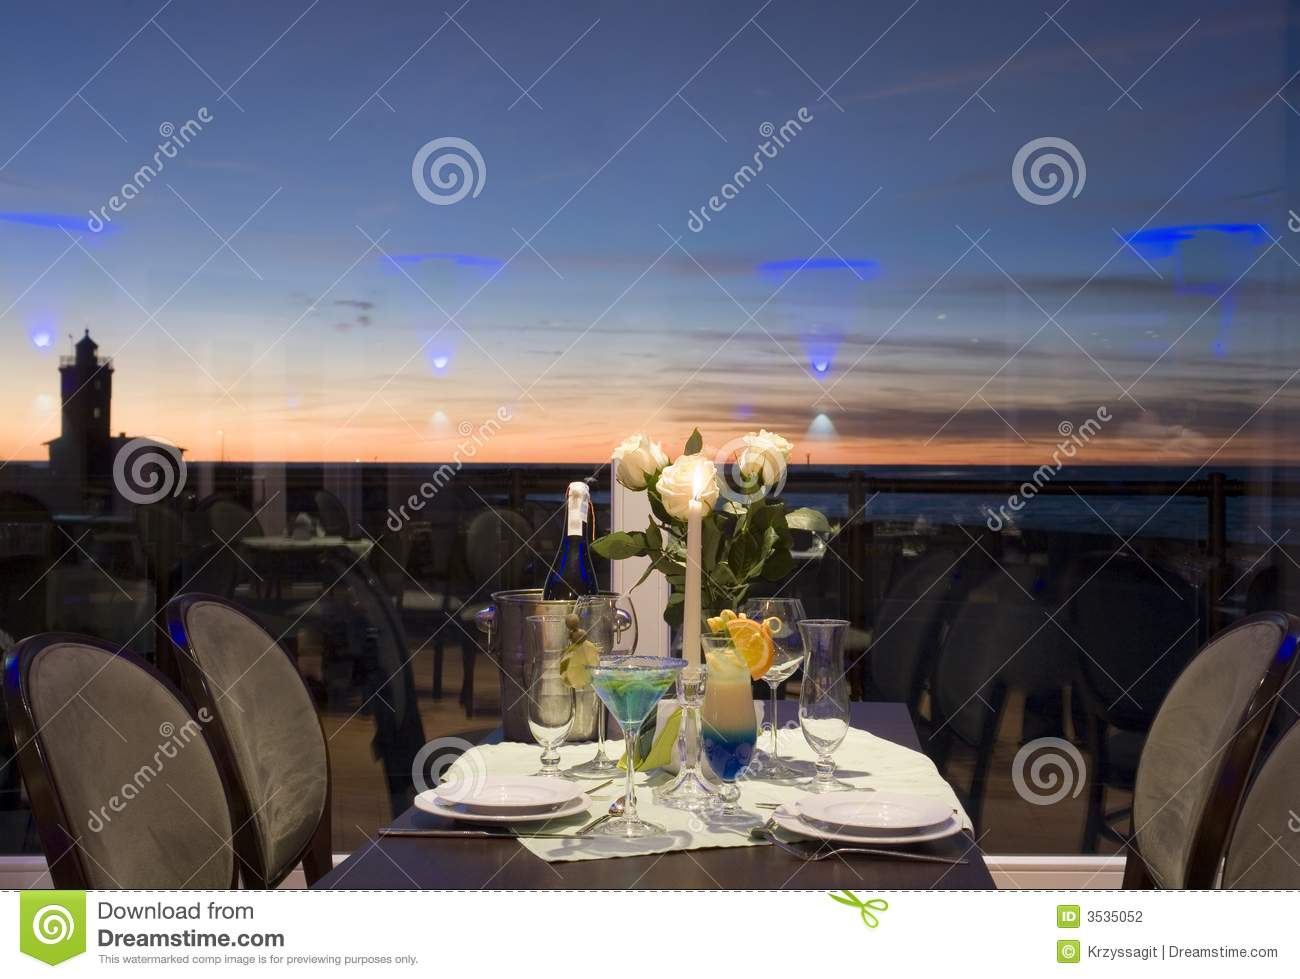 Sunset dinner table setting